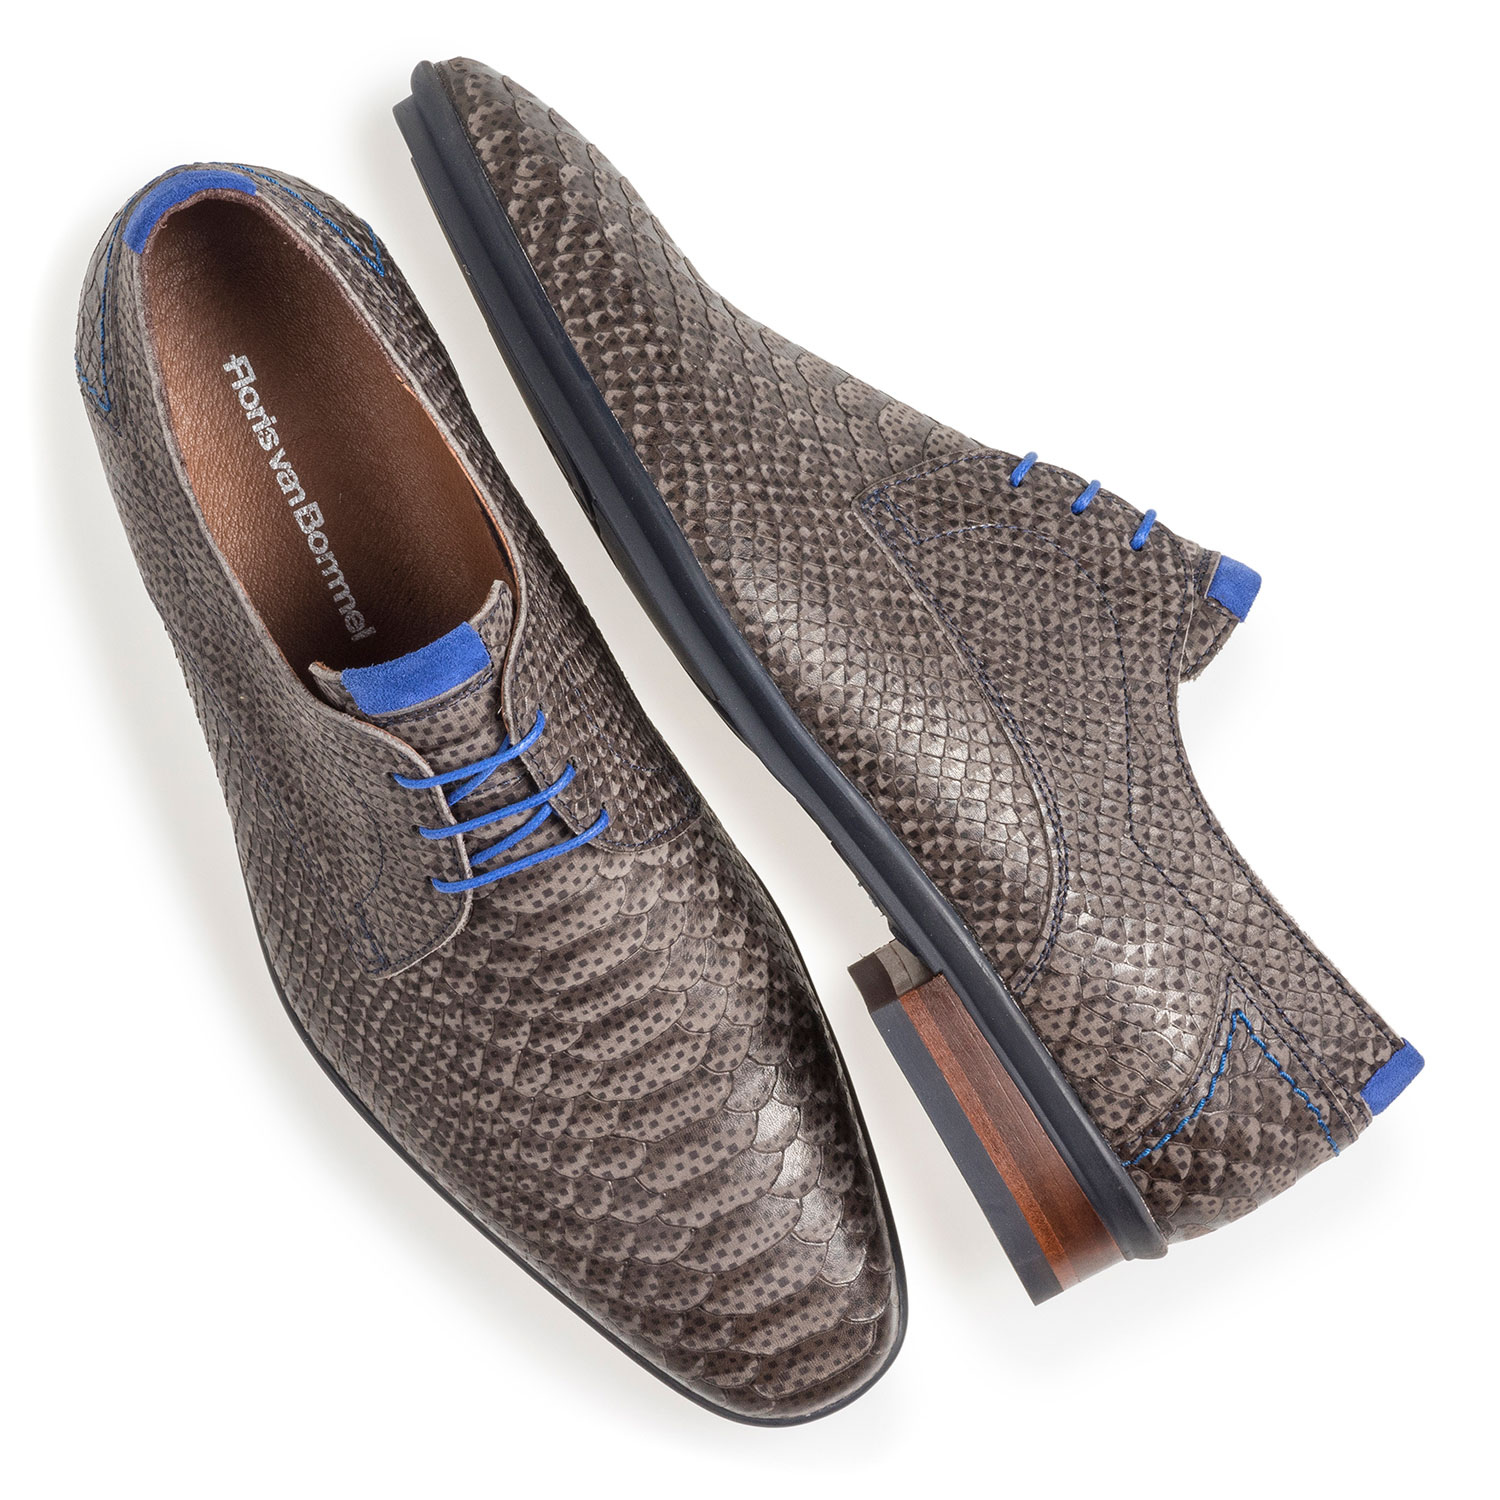 18441/18 - Dark grey nubuck leather lace shoe with snake print